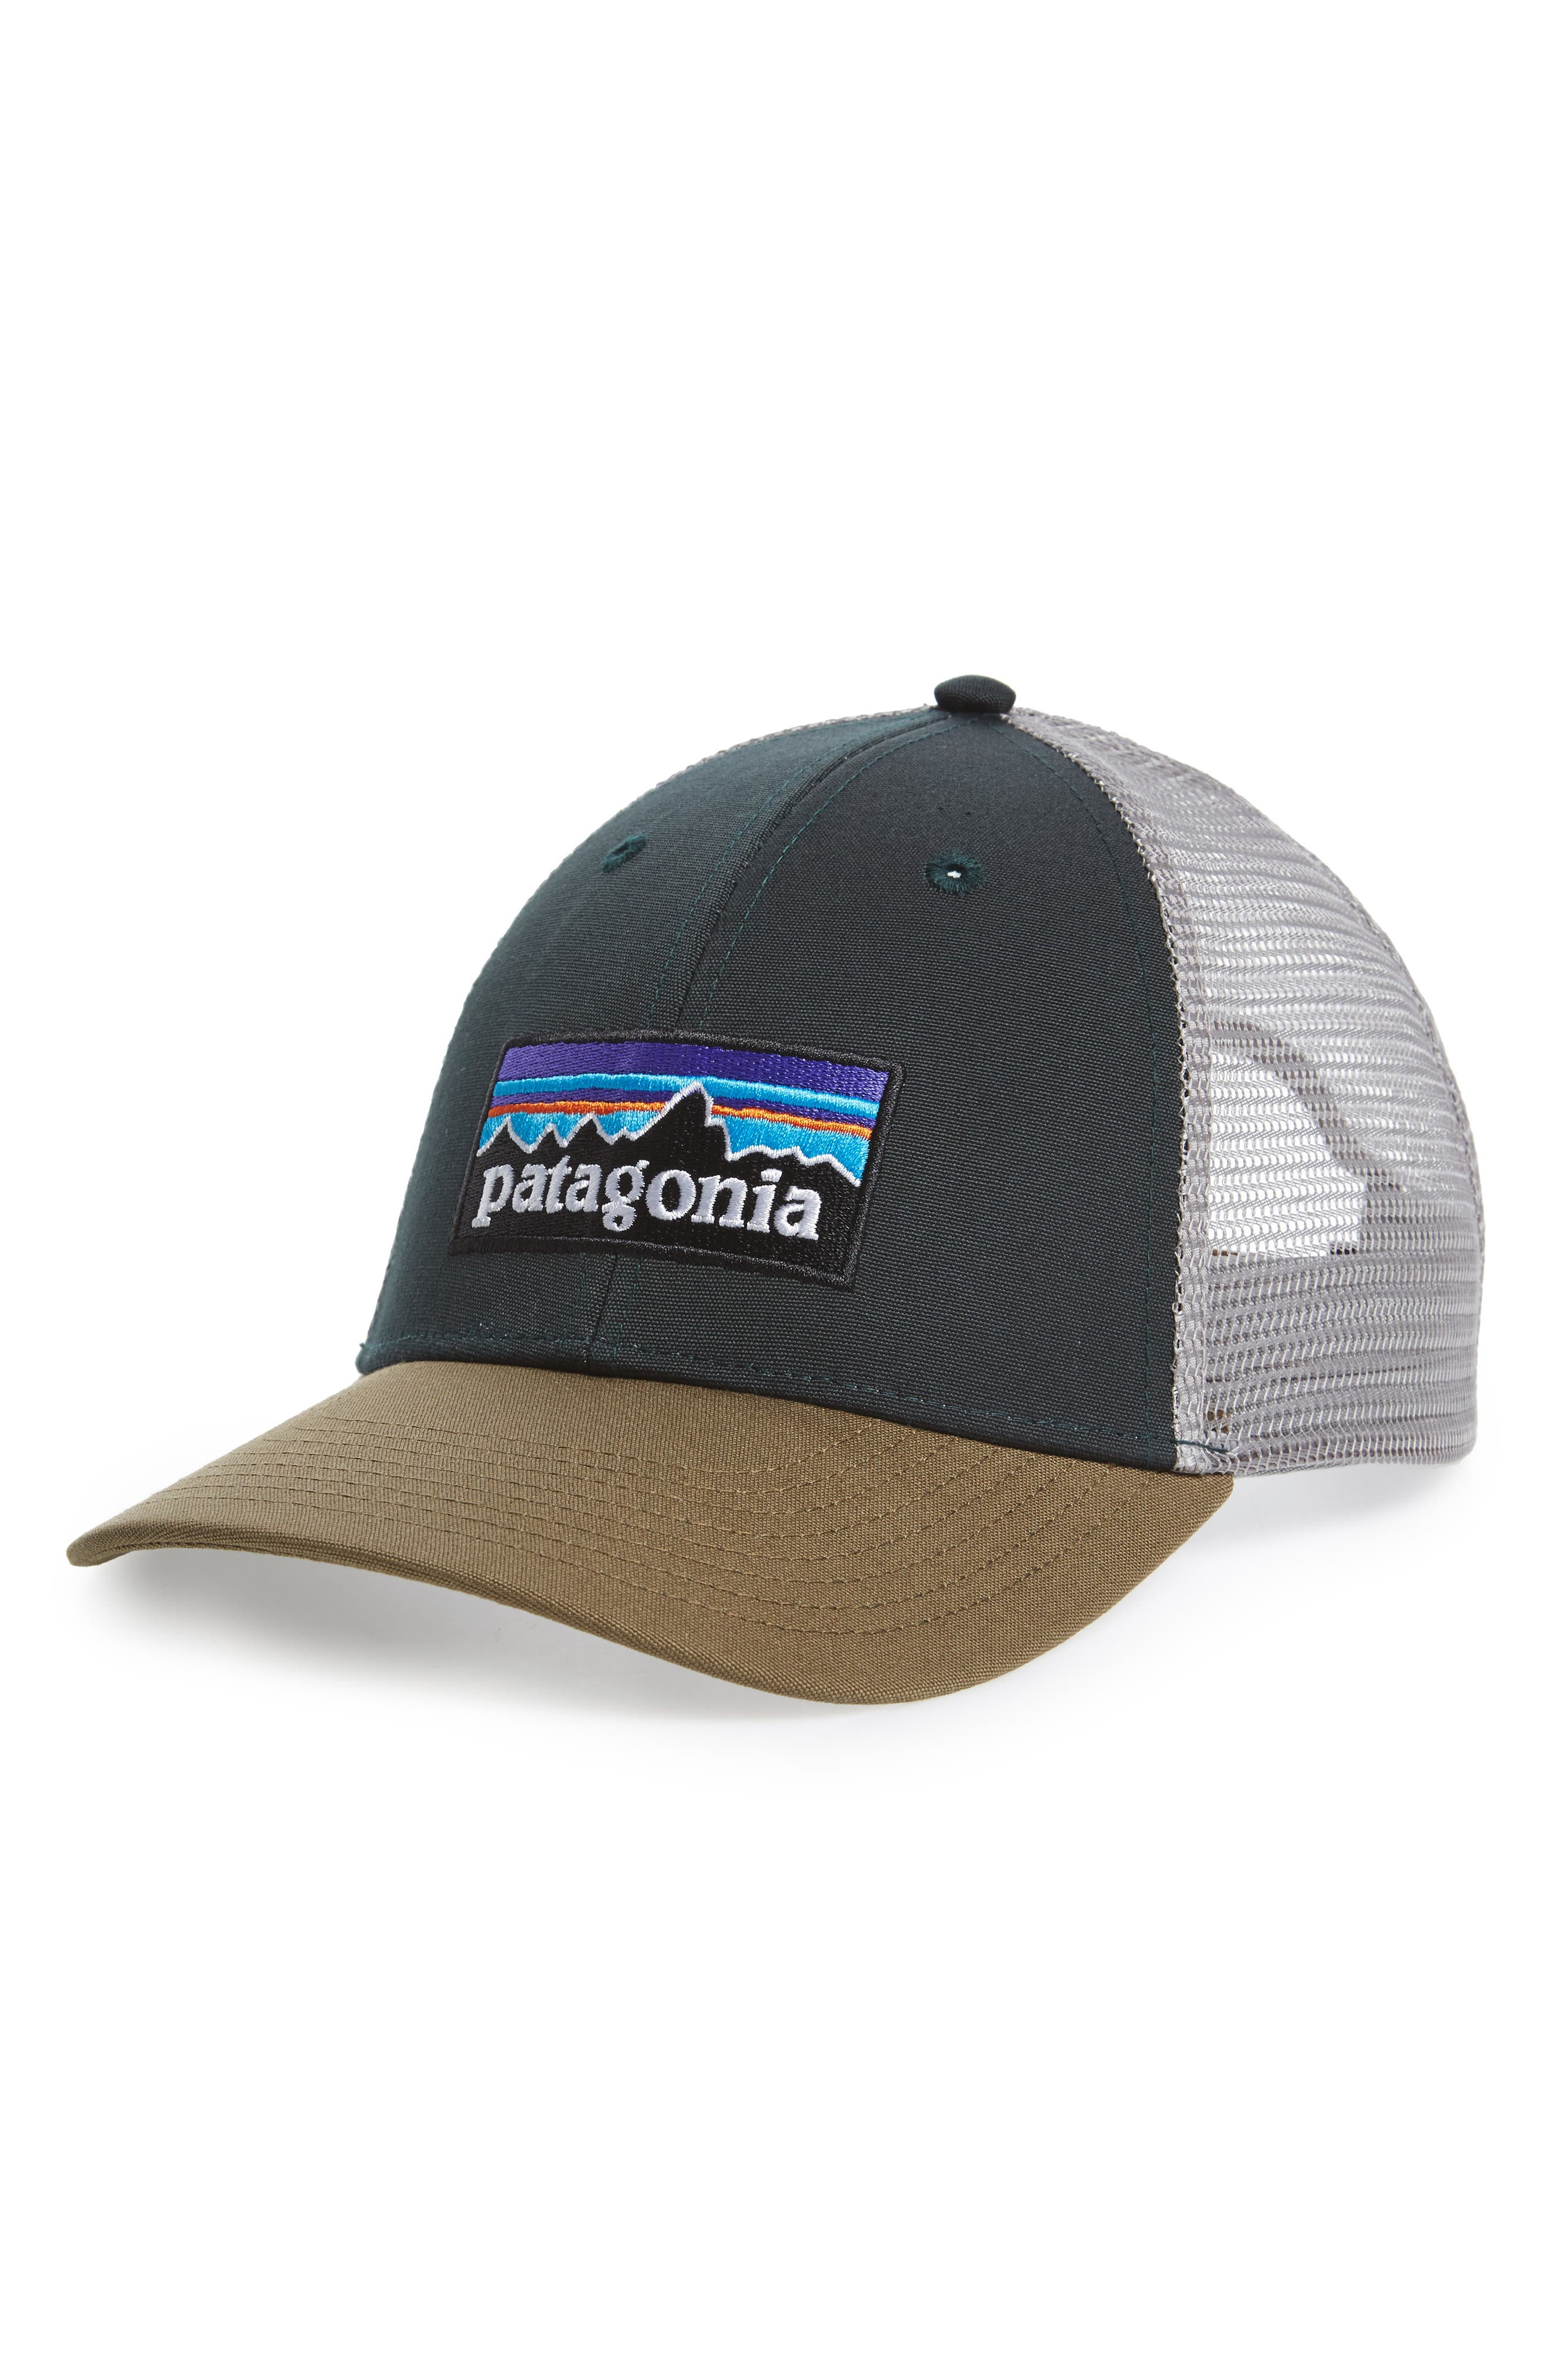 PATAGONIA PG - Lo Pro Trucker Hat